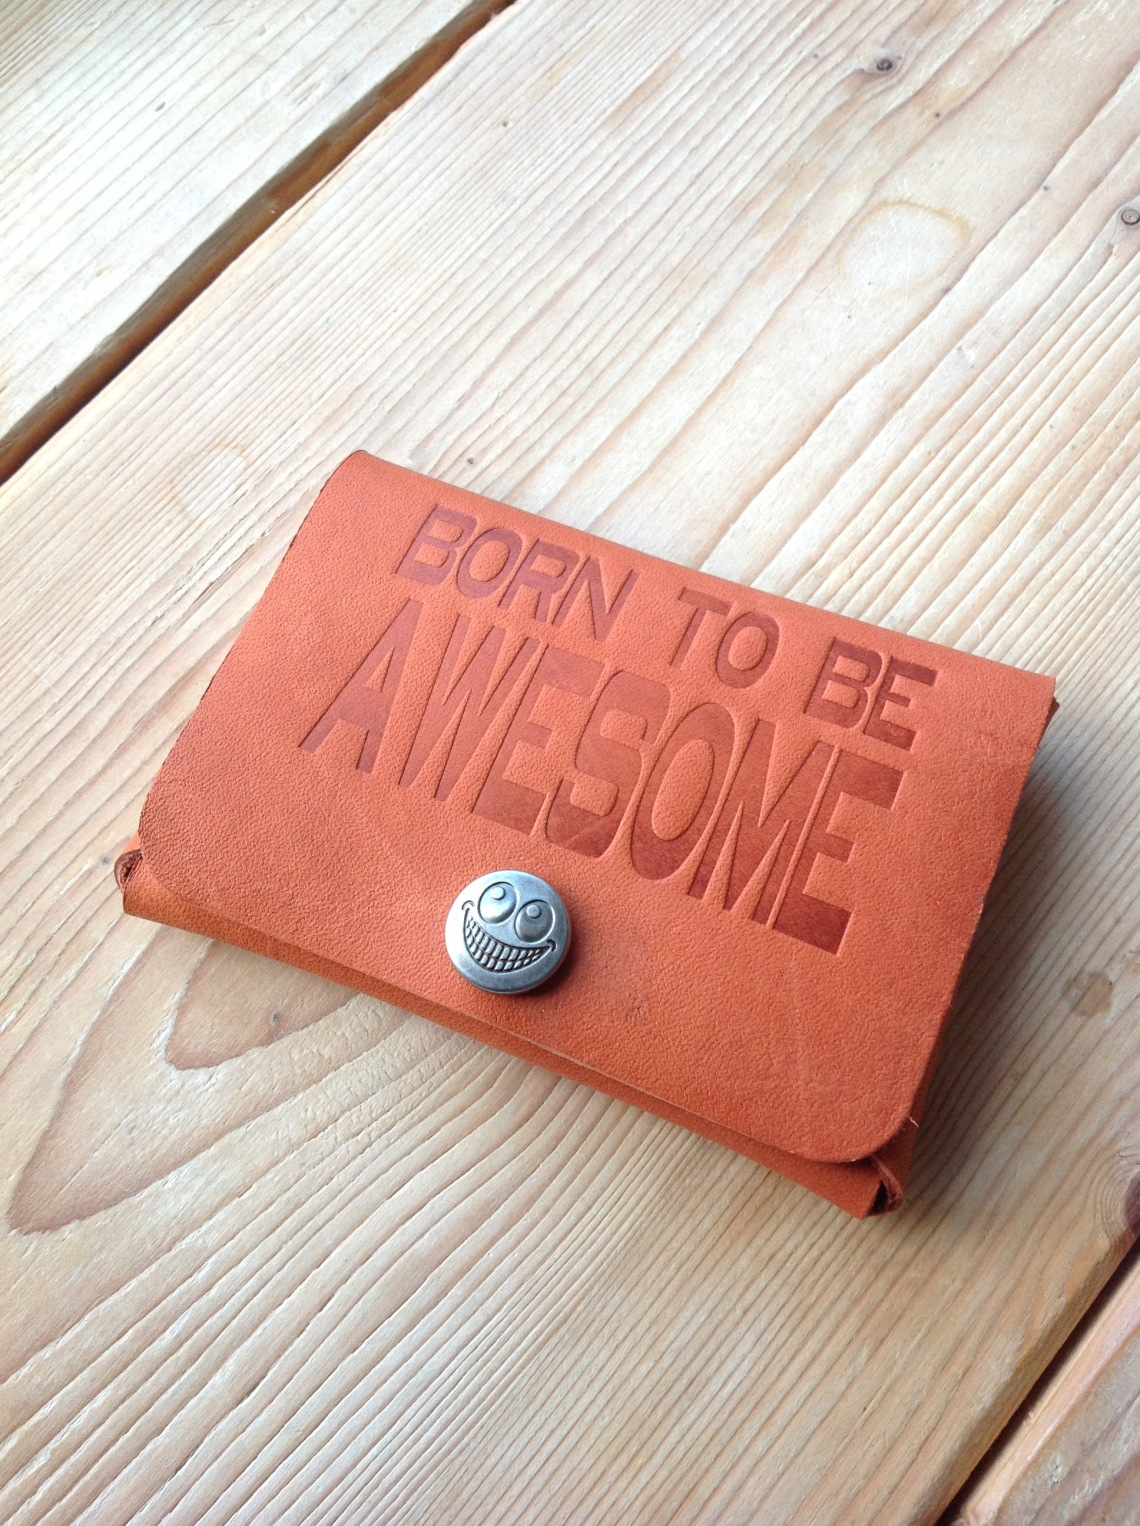 Born to be Awesome leather card holder